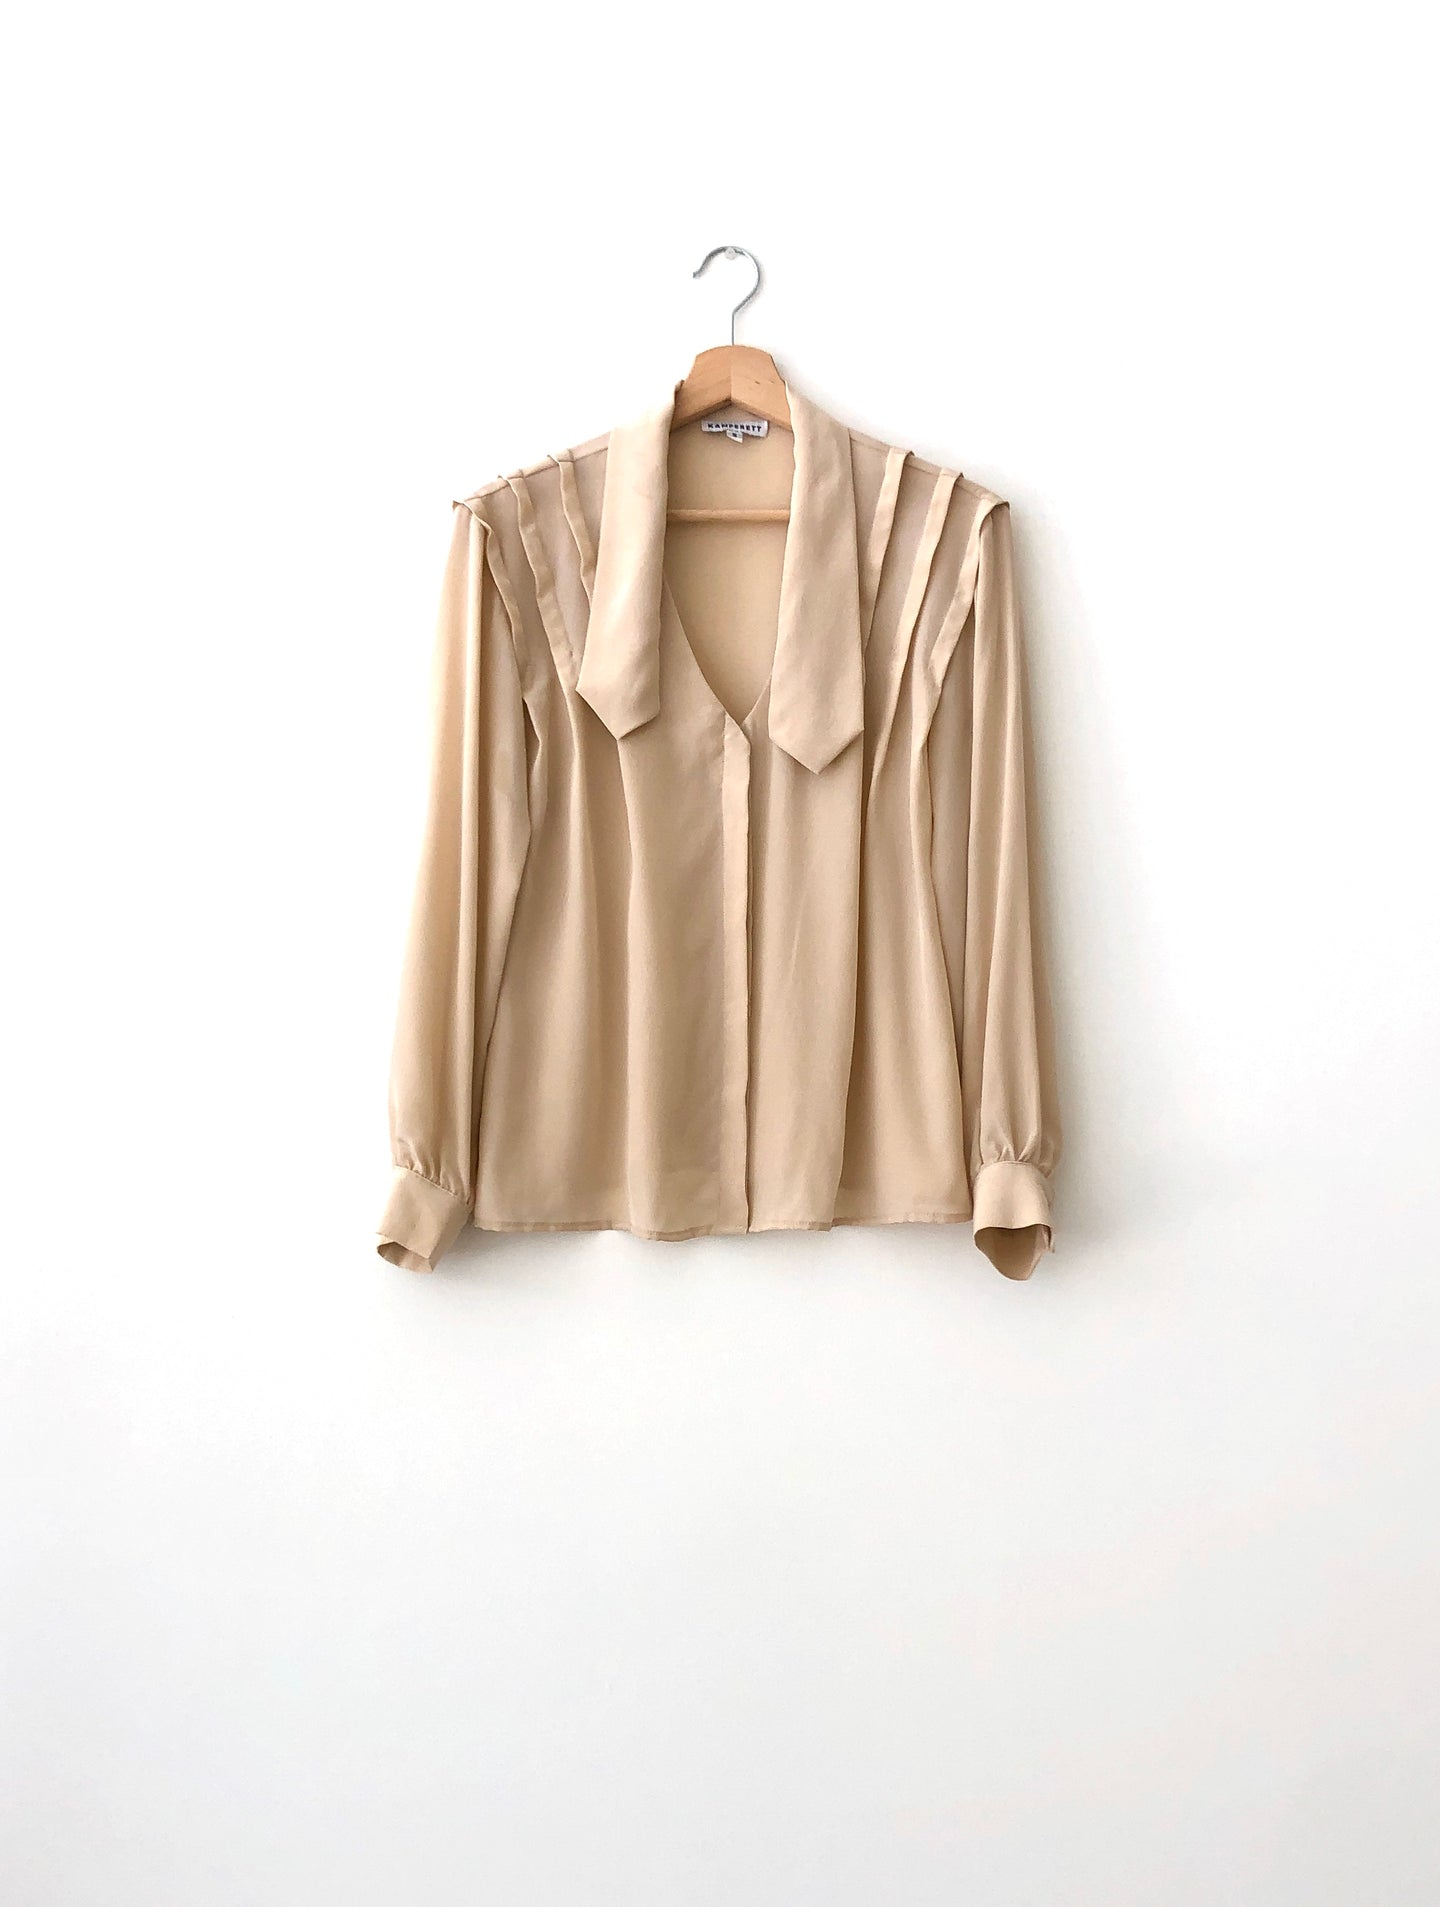 ANAISE x KAMPERETT SILK GEORGETTE BLOUSE